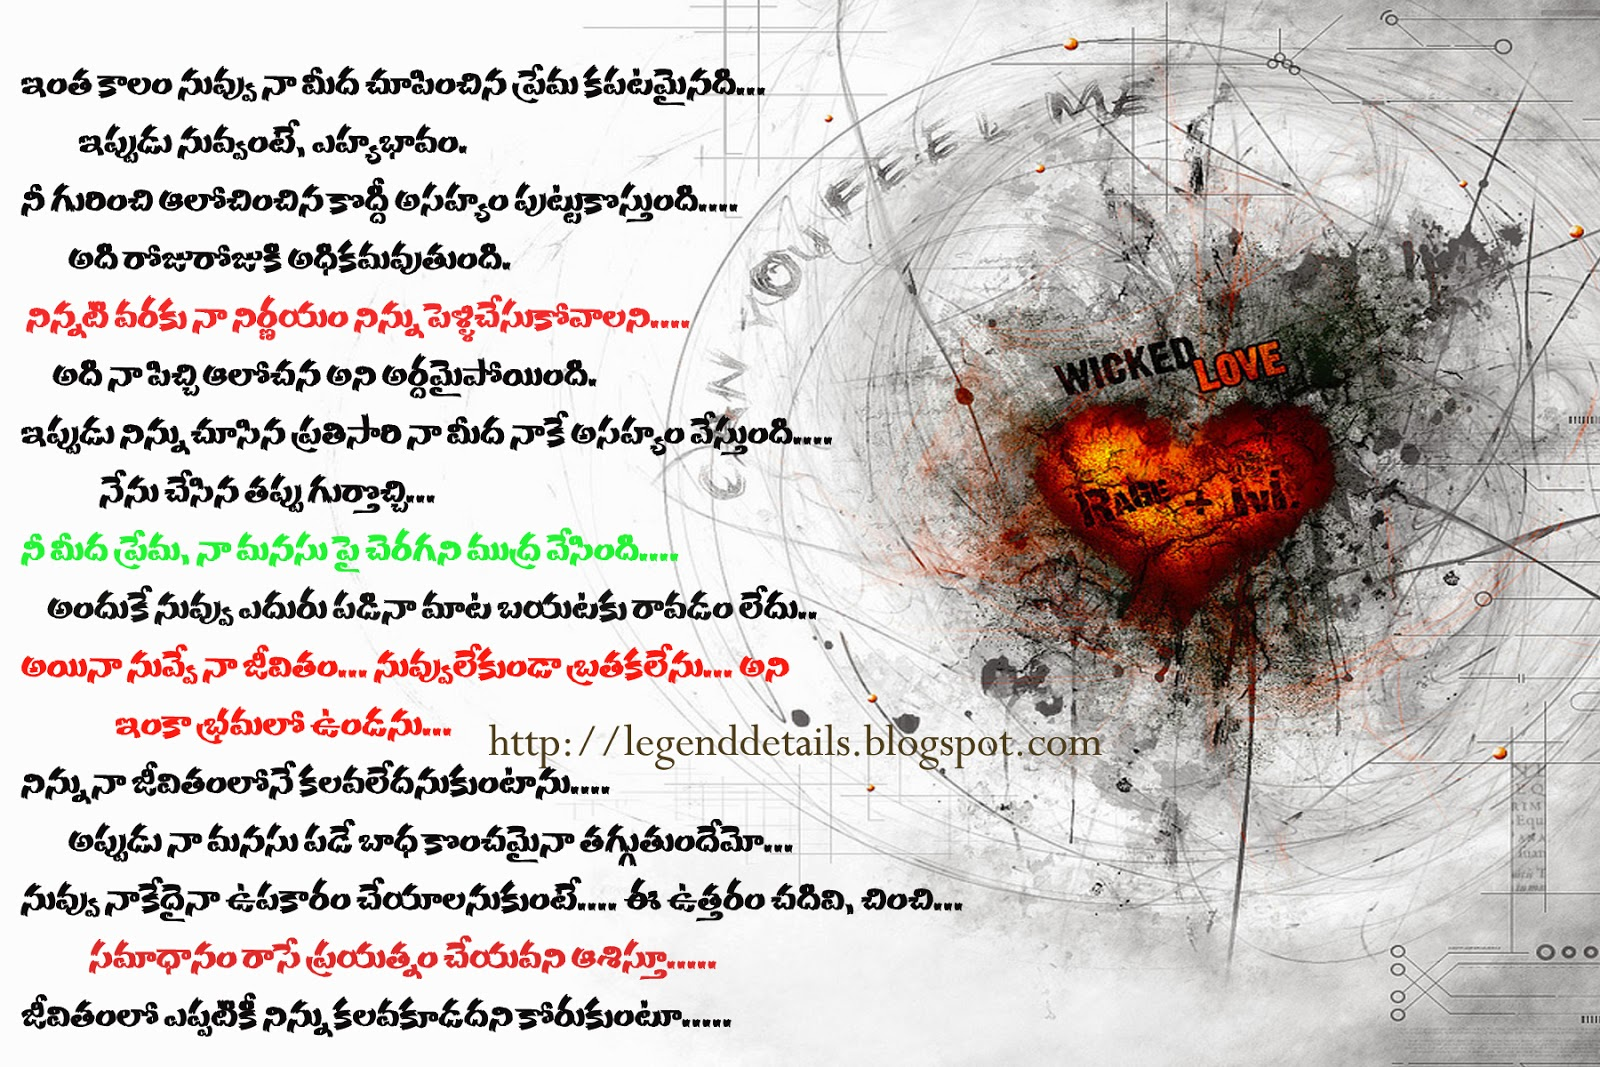 I Love Quotes In Telugu : Hate You Love Letter in Telugu Legendary Quotes